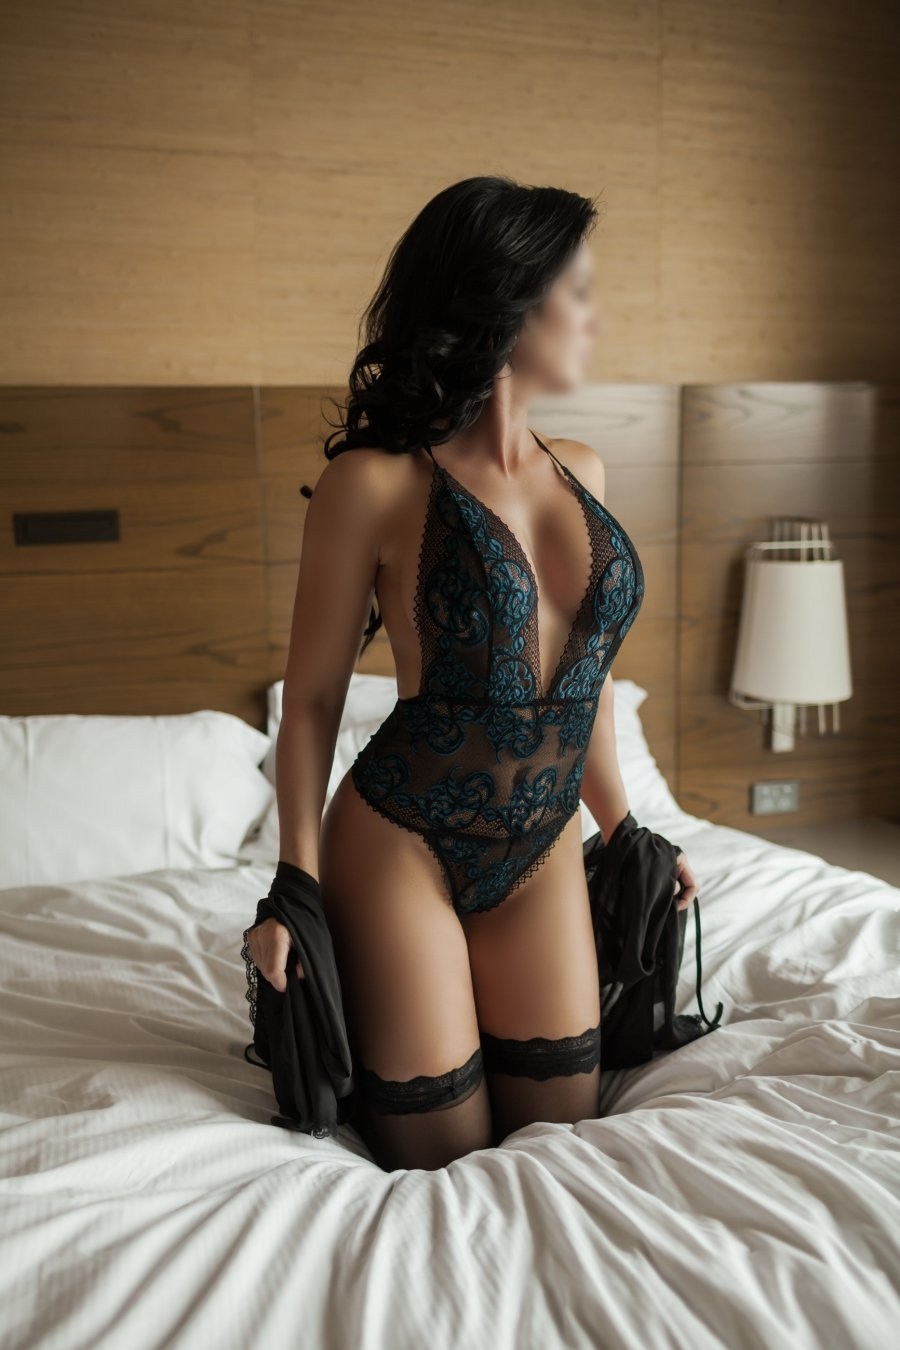 Ultimate Girlfriend Experience with athletic gal Taylor Rose - Sydney Escorts